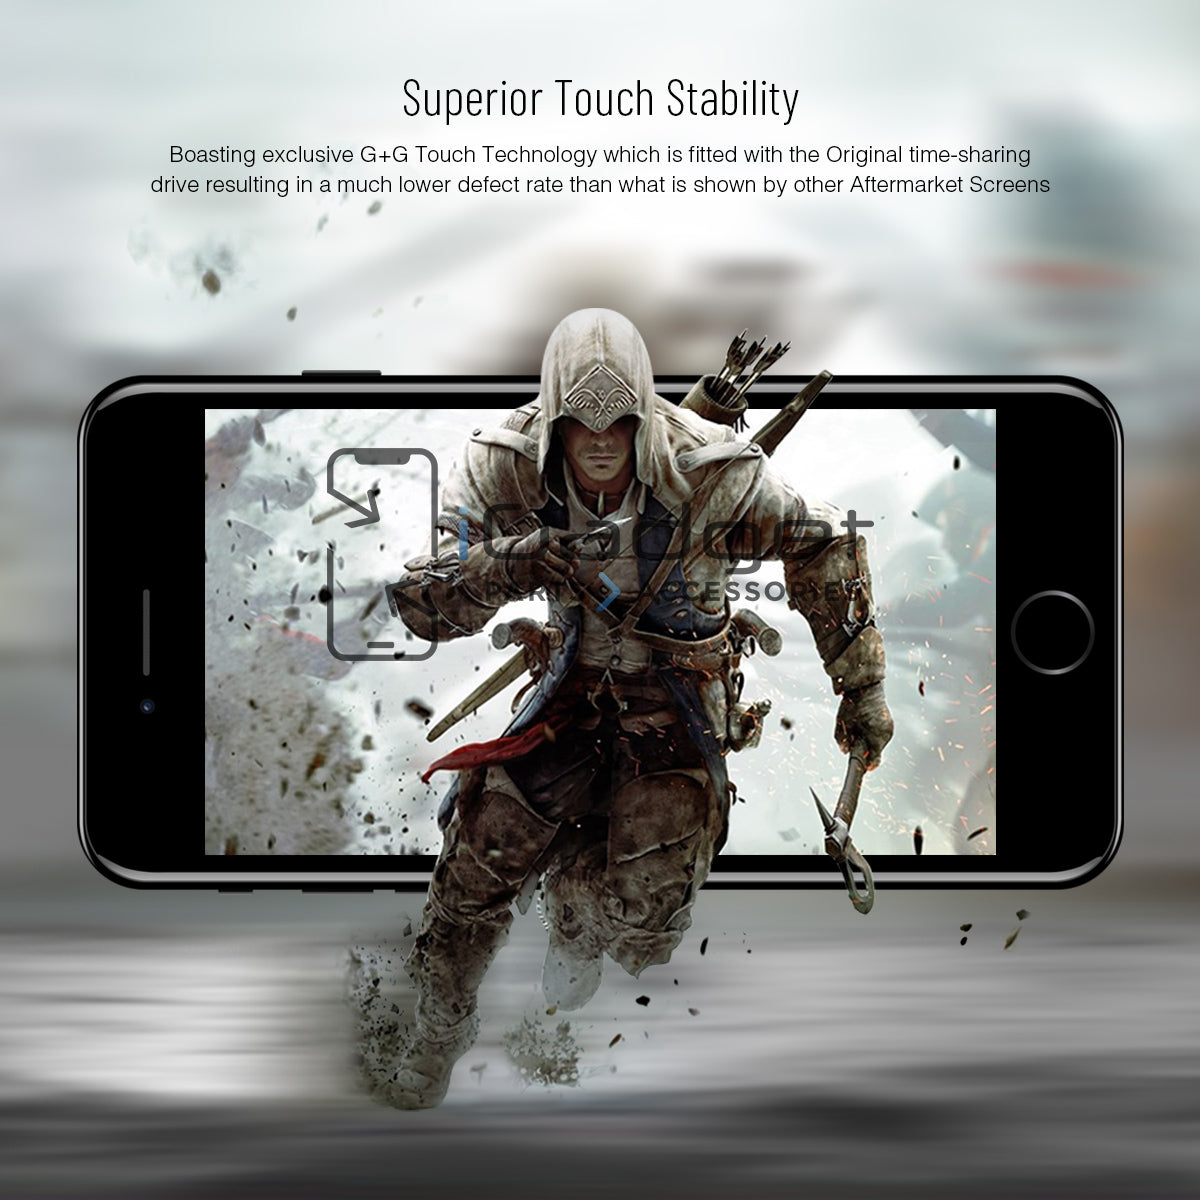 iGadget_OCX_iPhone_Screen_Replacement_G+G_touch_system_S99UE7S2B9FL.jpg